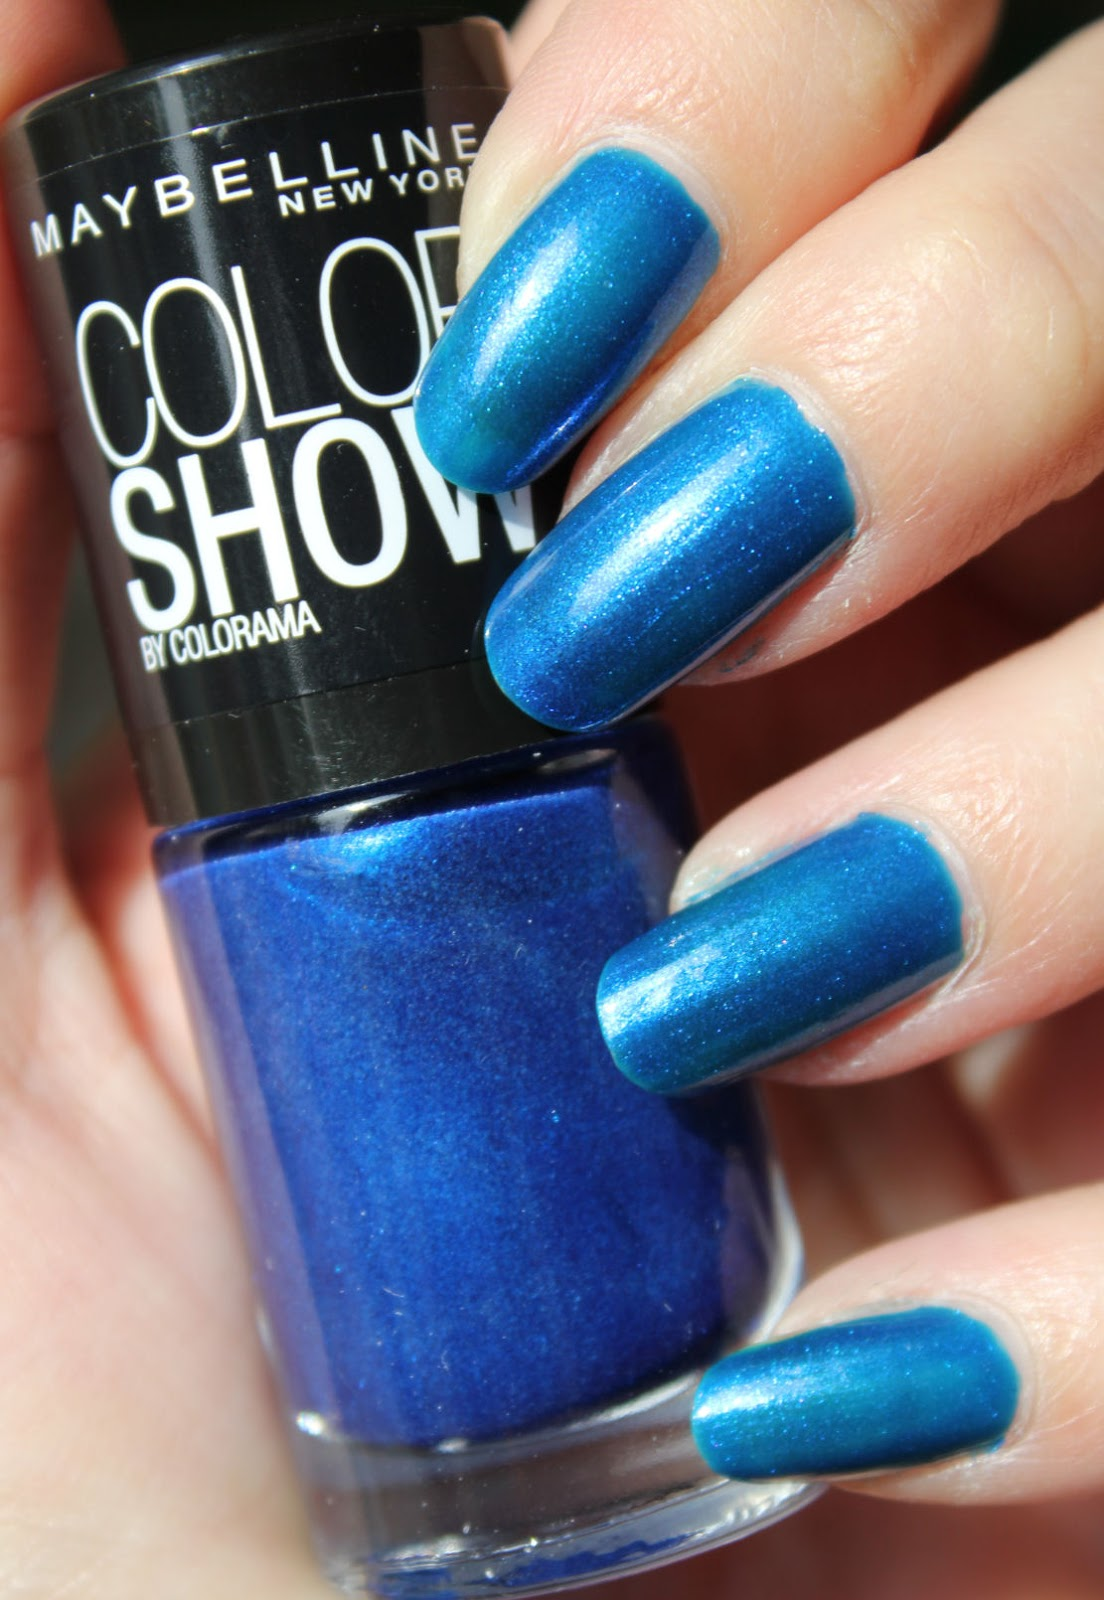 http://lacquediction.blogspot.de/2014/10/maybelline-colorshow-661-ocean-blue.html